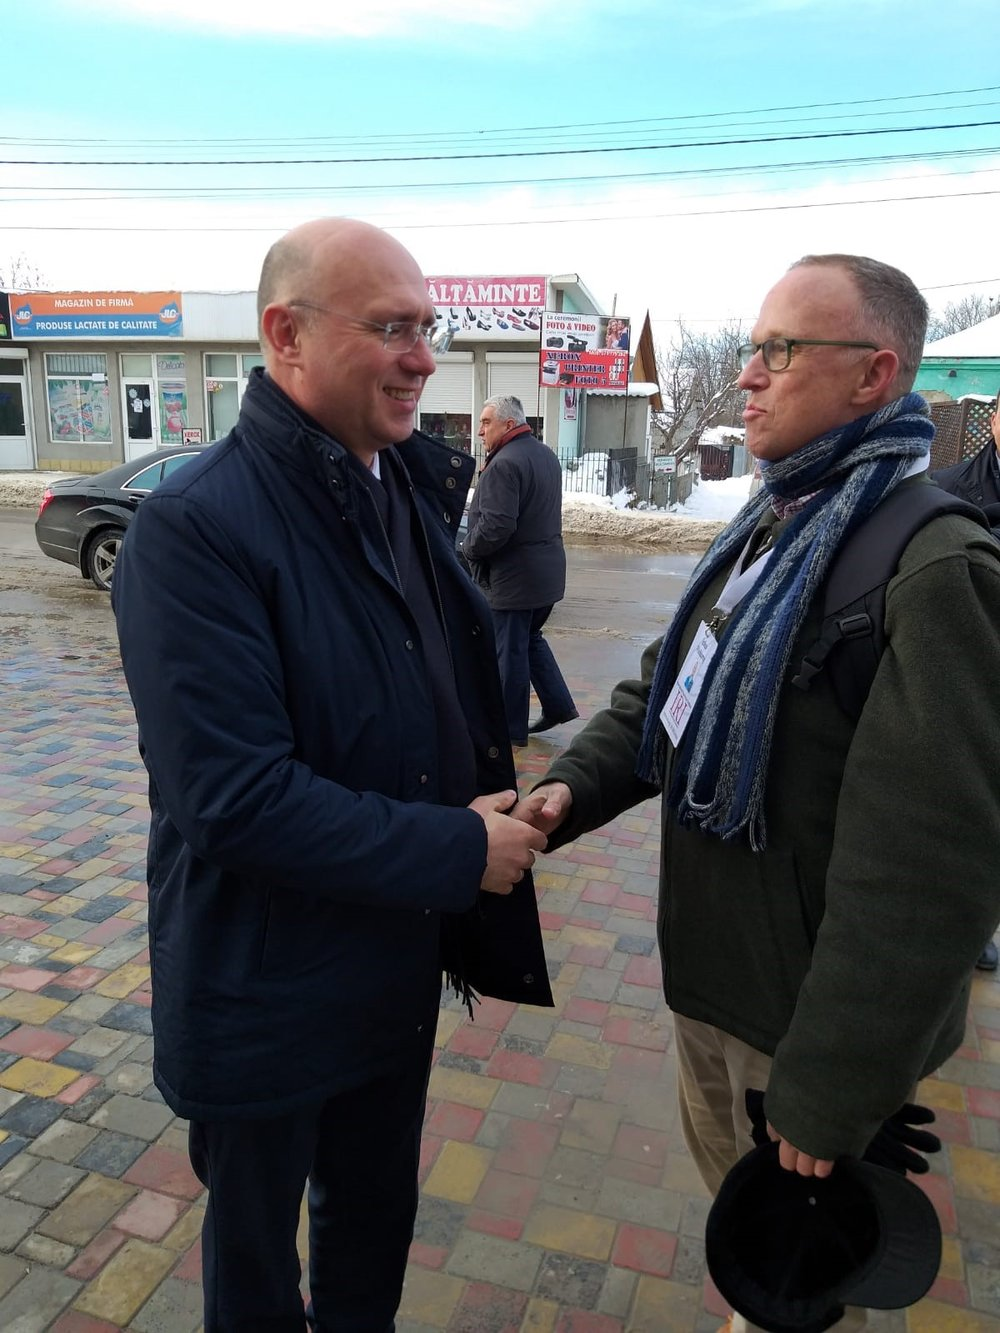 IRI LTO in Orhei meets with candidate Prime Minister Pavel Filip as he prepares for the upcoming February 24 parliamentary elections.